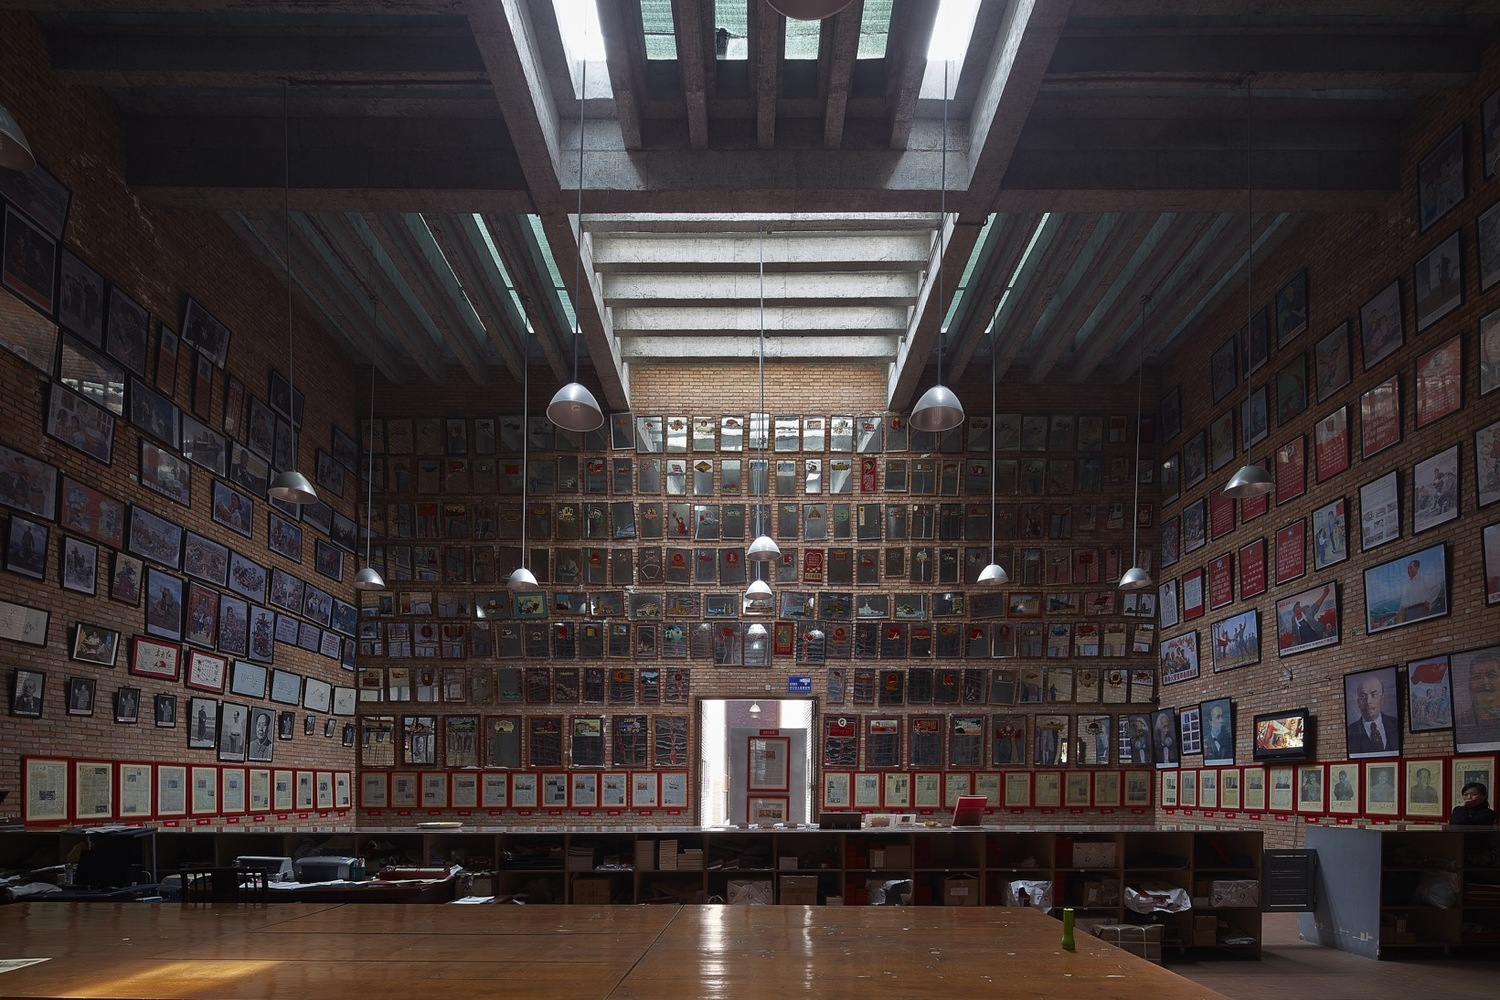 Clock Museum Of the Cultural Revolution by Jiakun Architects- Order within the Chaos - Sheet8